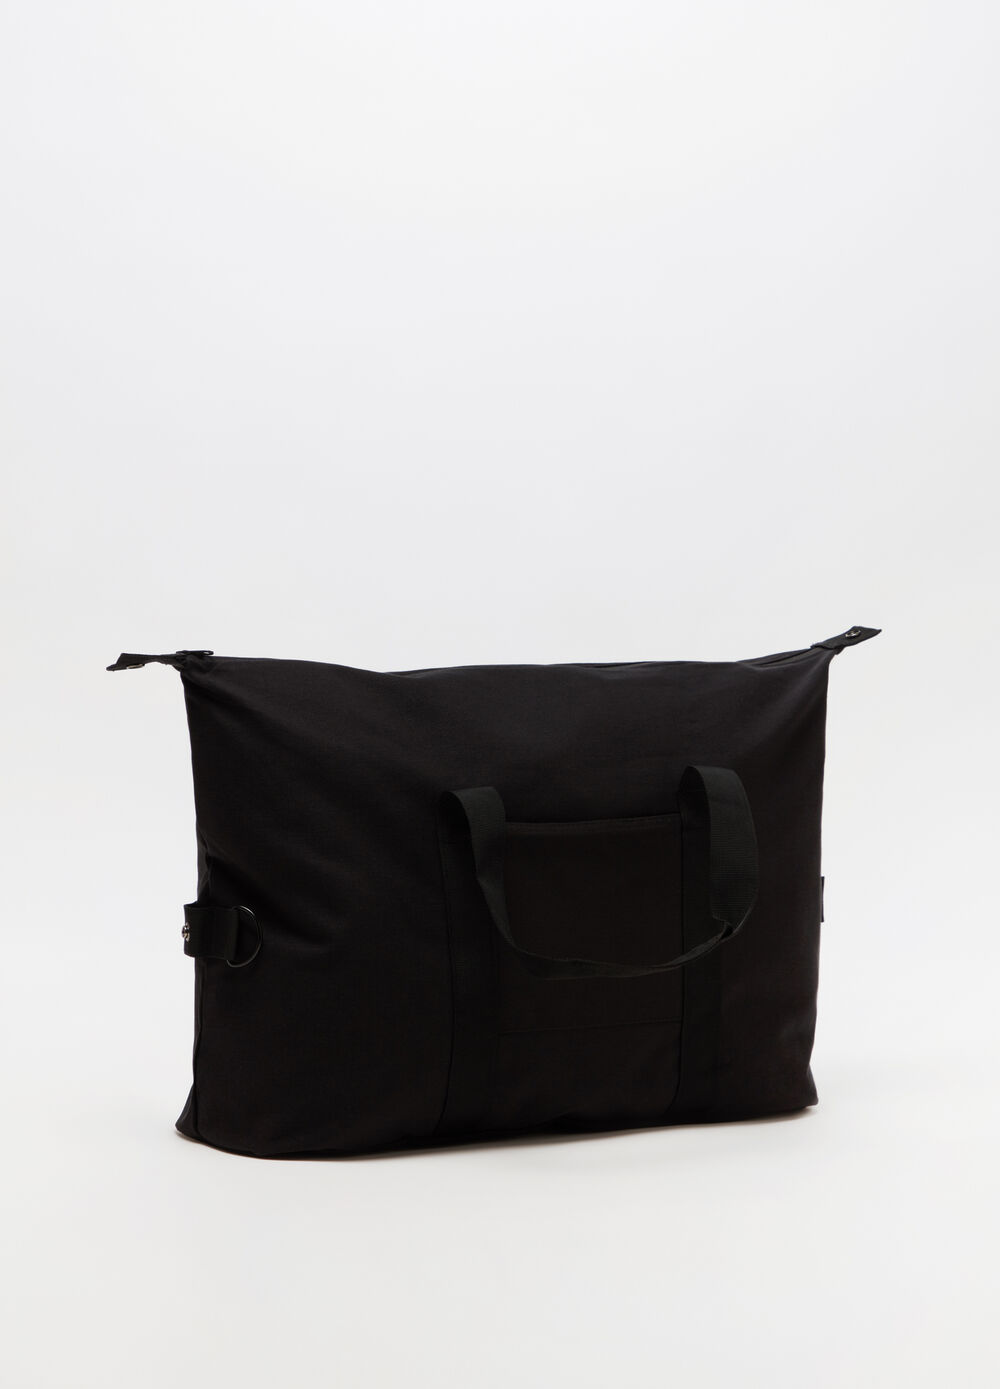 Shoulder bag cotone con tasca applicata